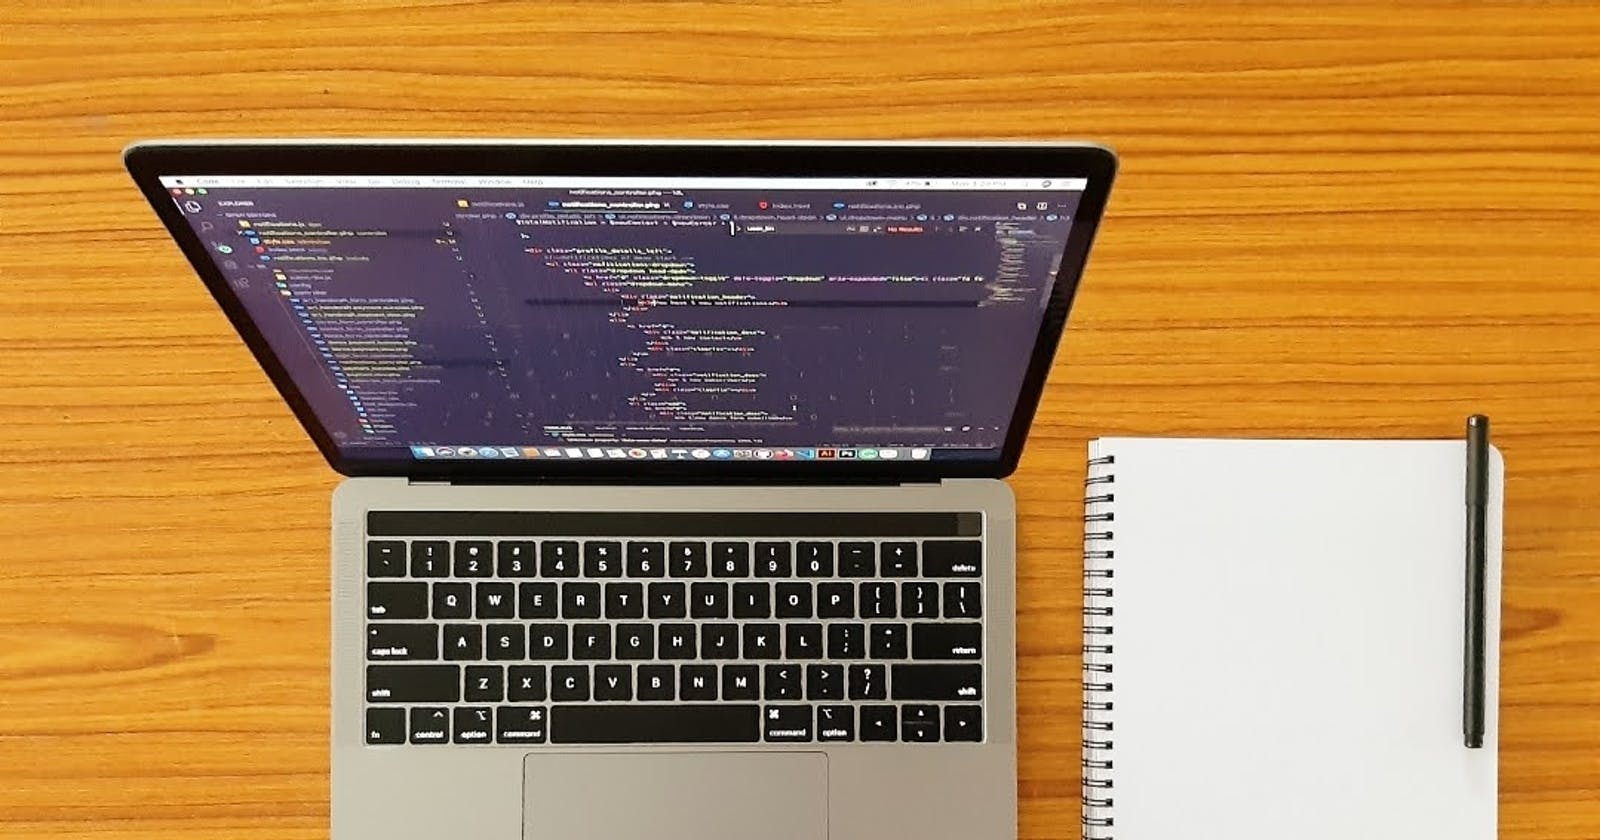 Do you want to learn web dev and don't know where to start?